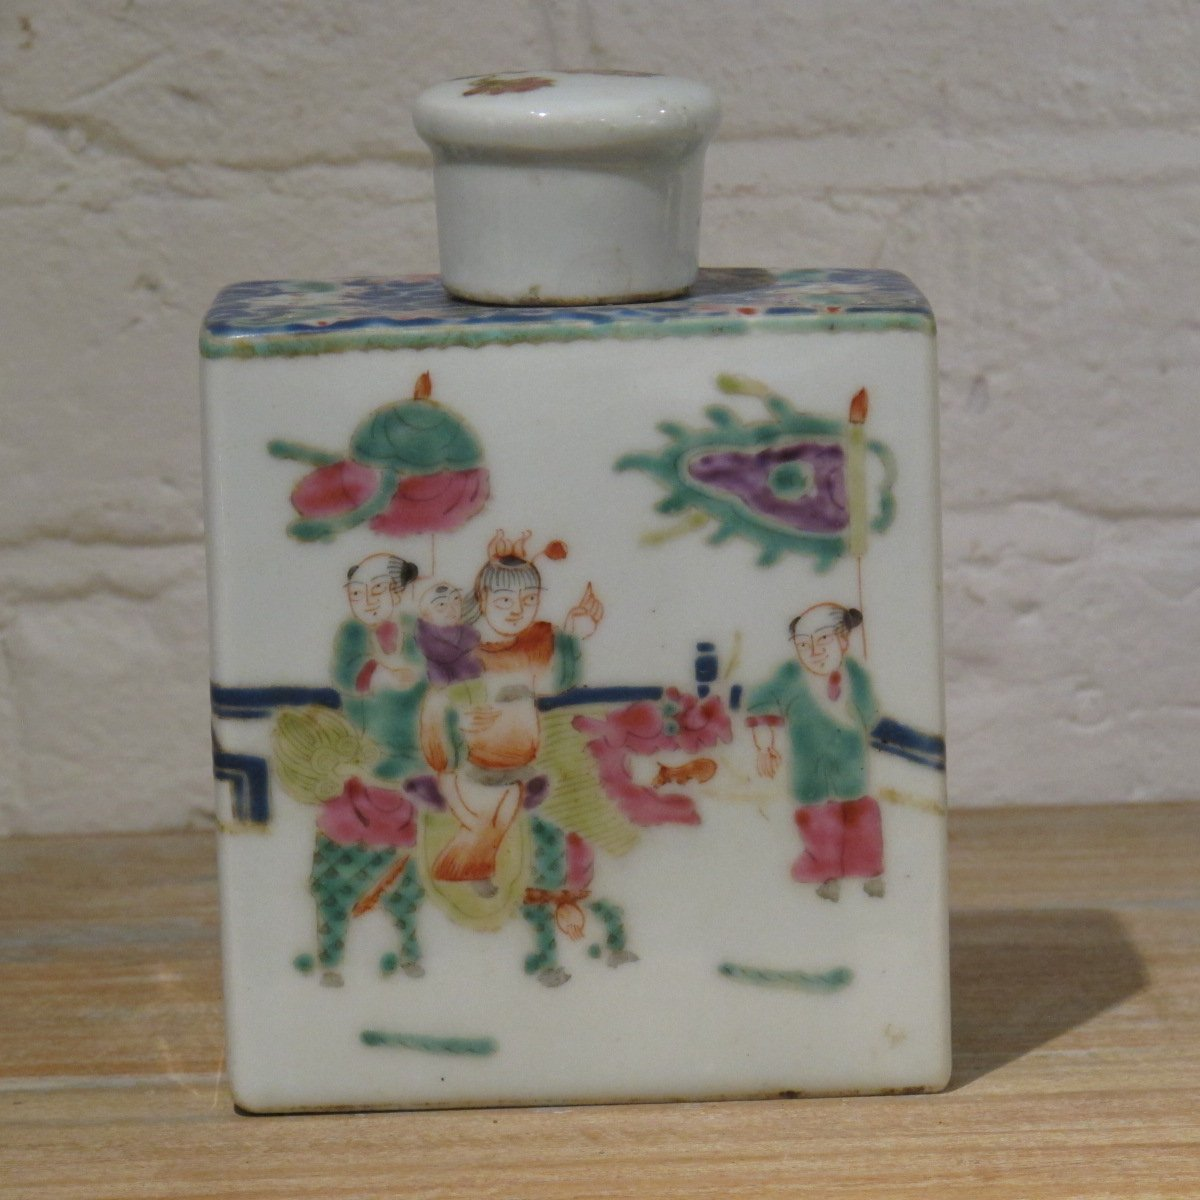 Porcelain Tea Caddy With Famille Rose Glaze | Indigo Oriental Antiques